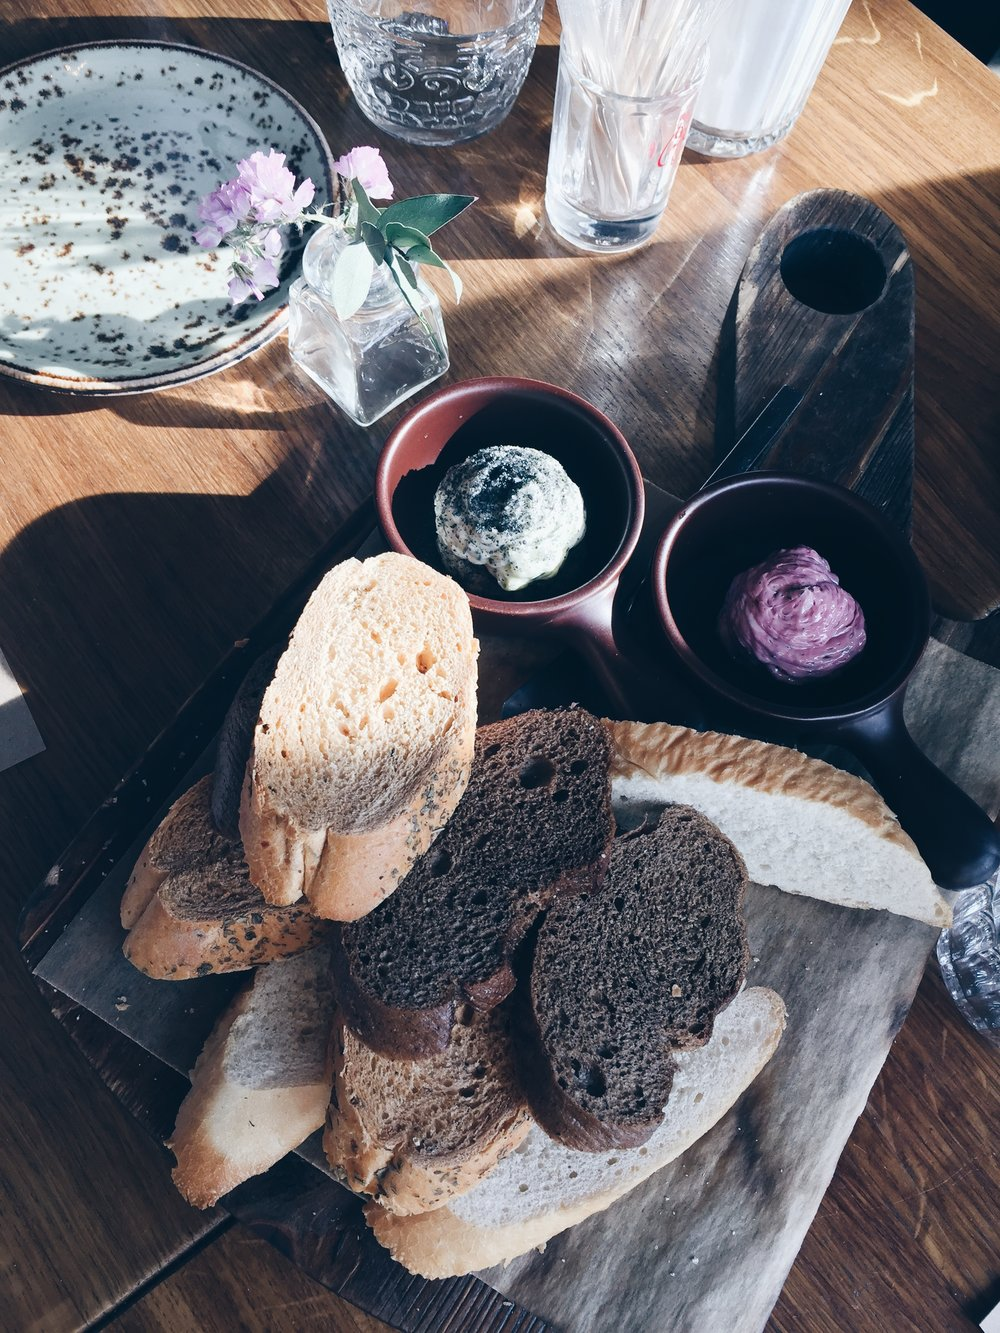 Beetroot butter and black salted butter w/ bread - Starter